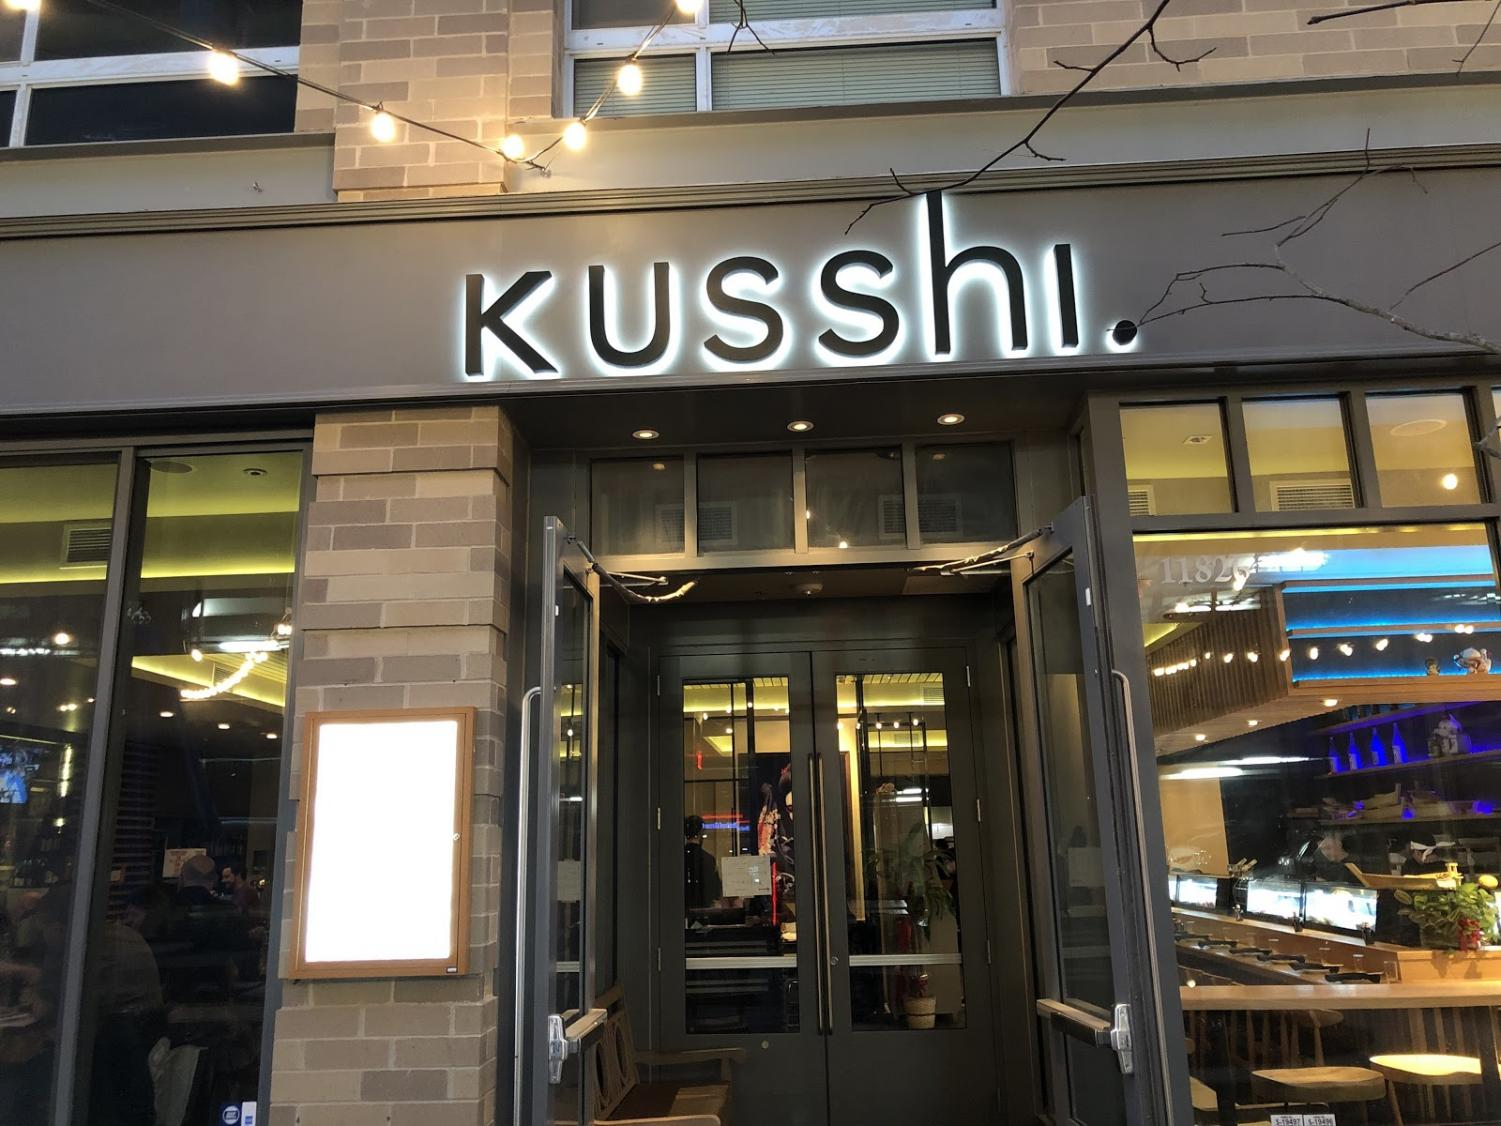 Kusshi is a new restaurant located in Pike and Rose. While the atmosphere was lovely, the food was mediocre at best.